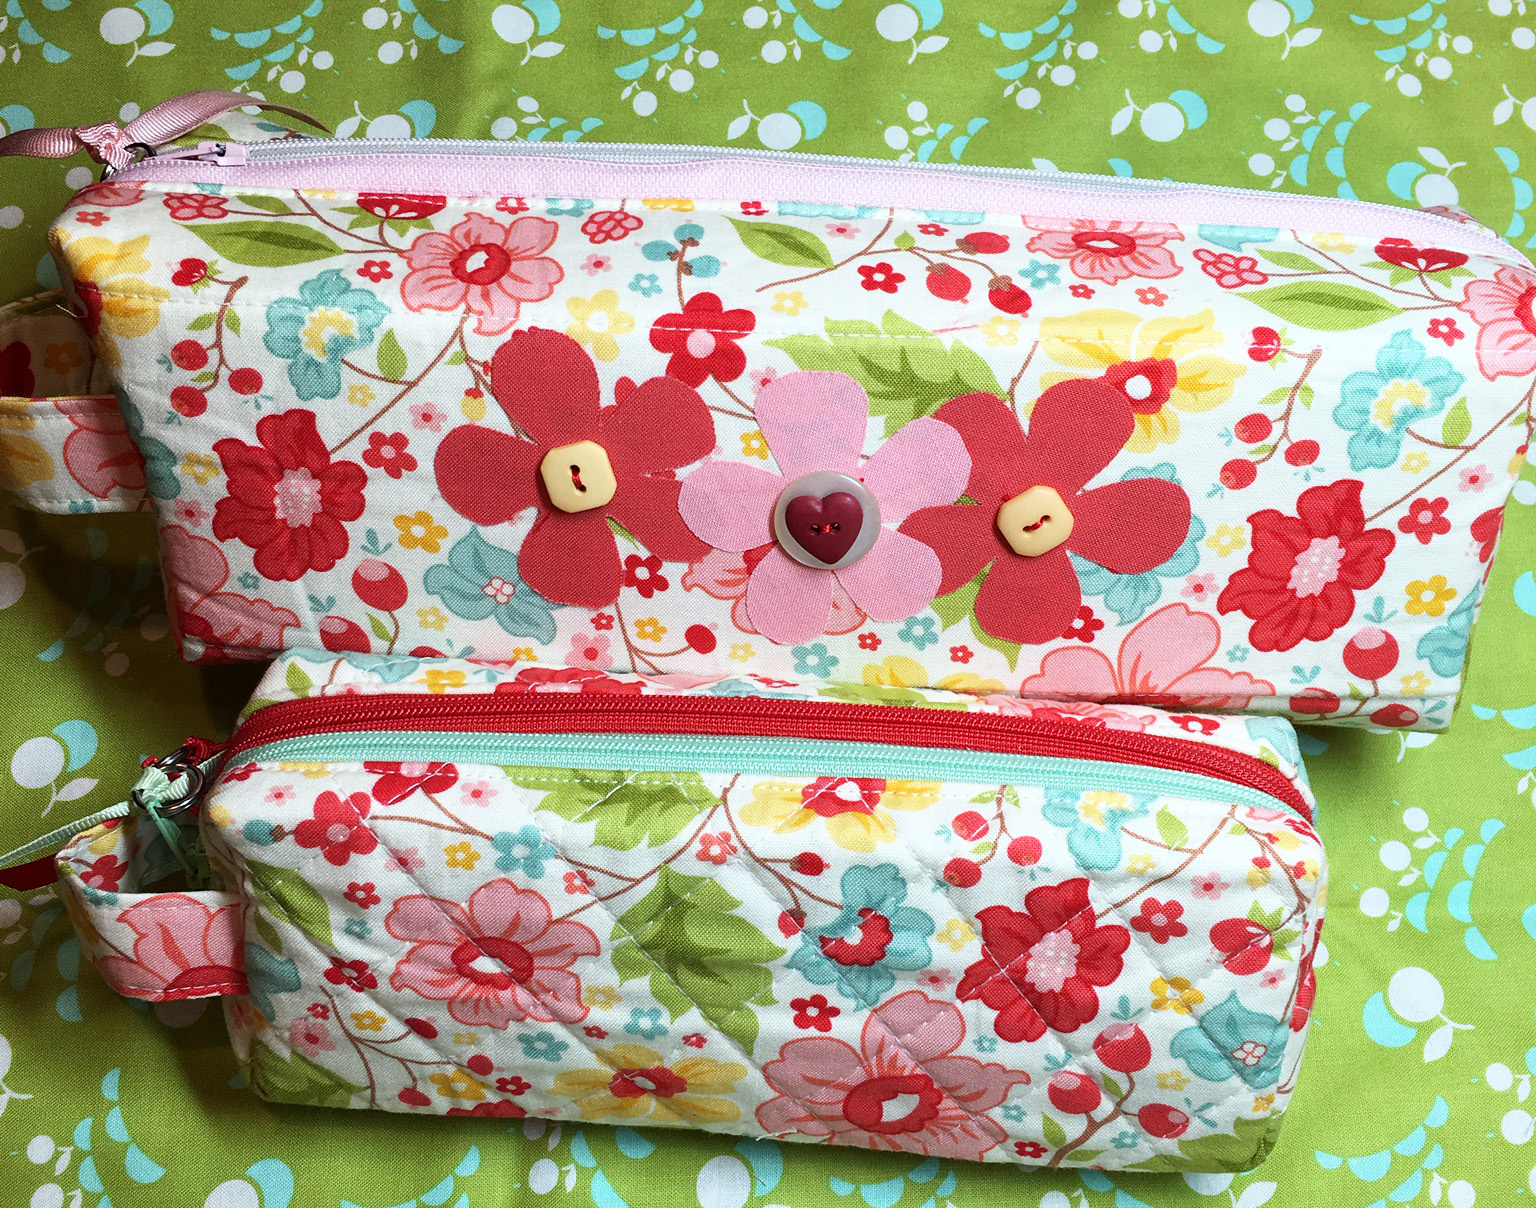 Sew Sweetness Annex Double-Zip Box Pouch, sewn by Mindy